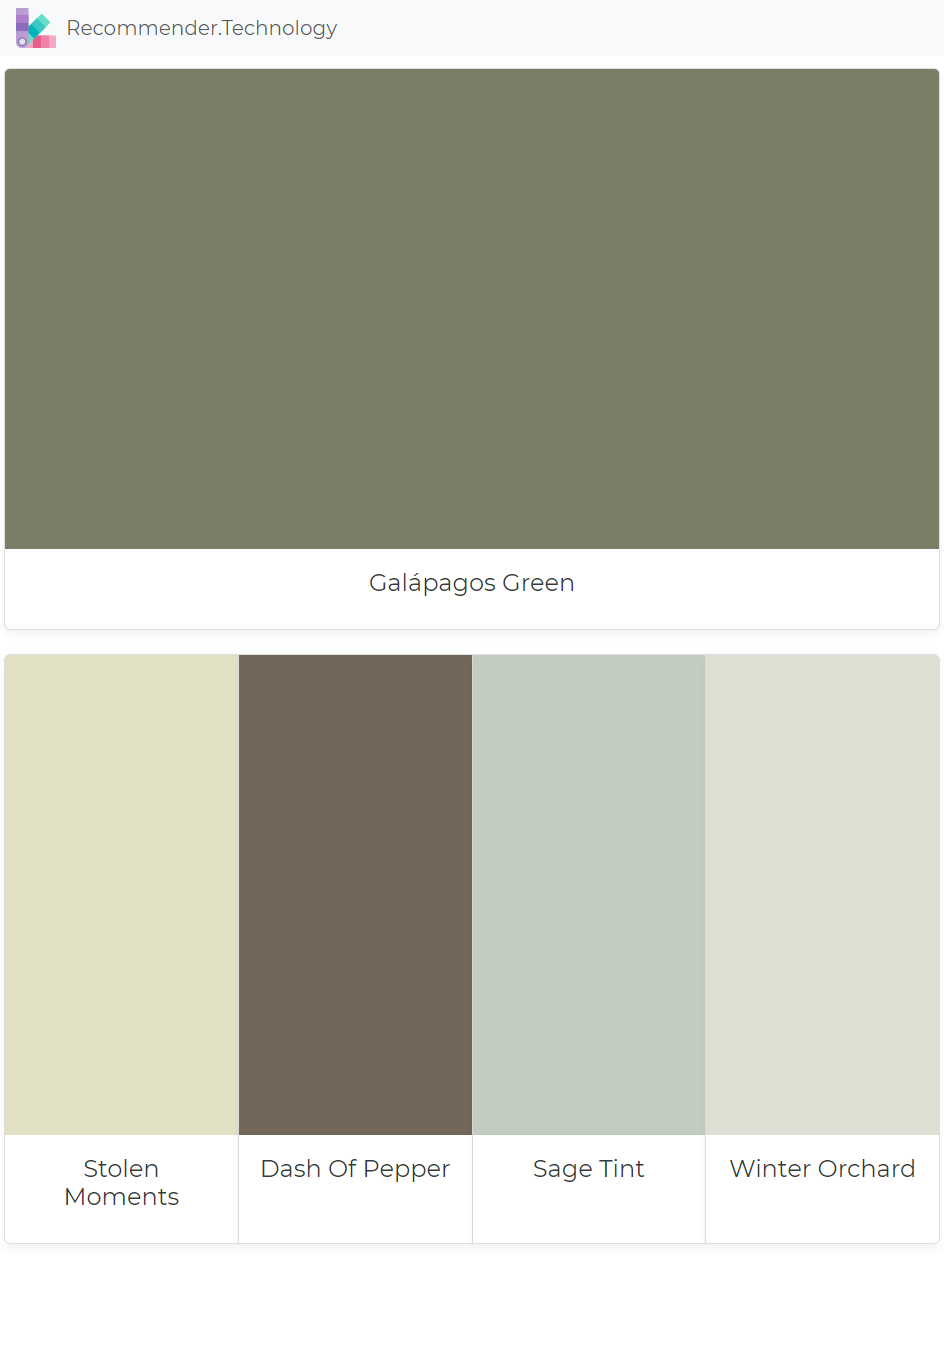 Galapagos Green Stolen Moments Dash Of Pepper Sage Tint Winter Orchard Benjamin Moore Colors Perfect Paint Color Paint Colors Benjamin Moore